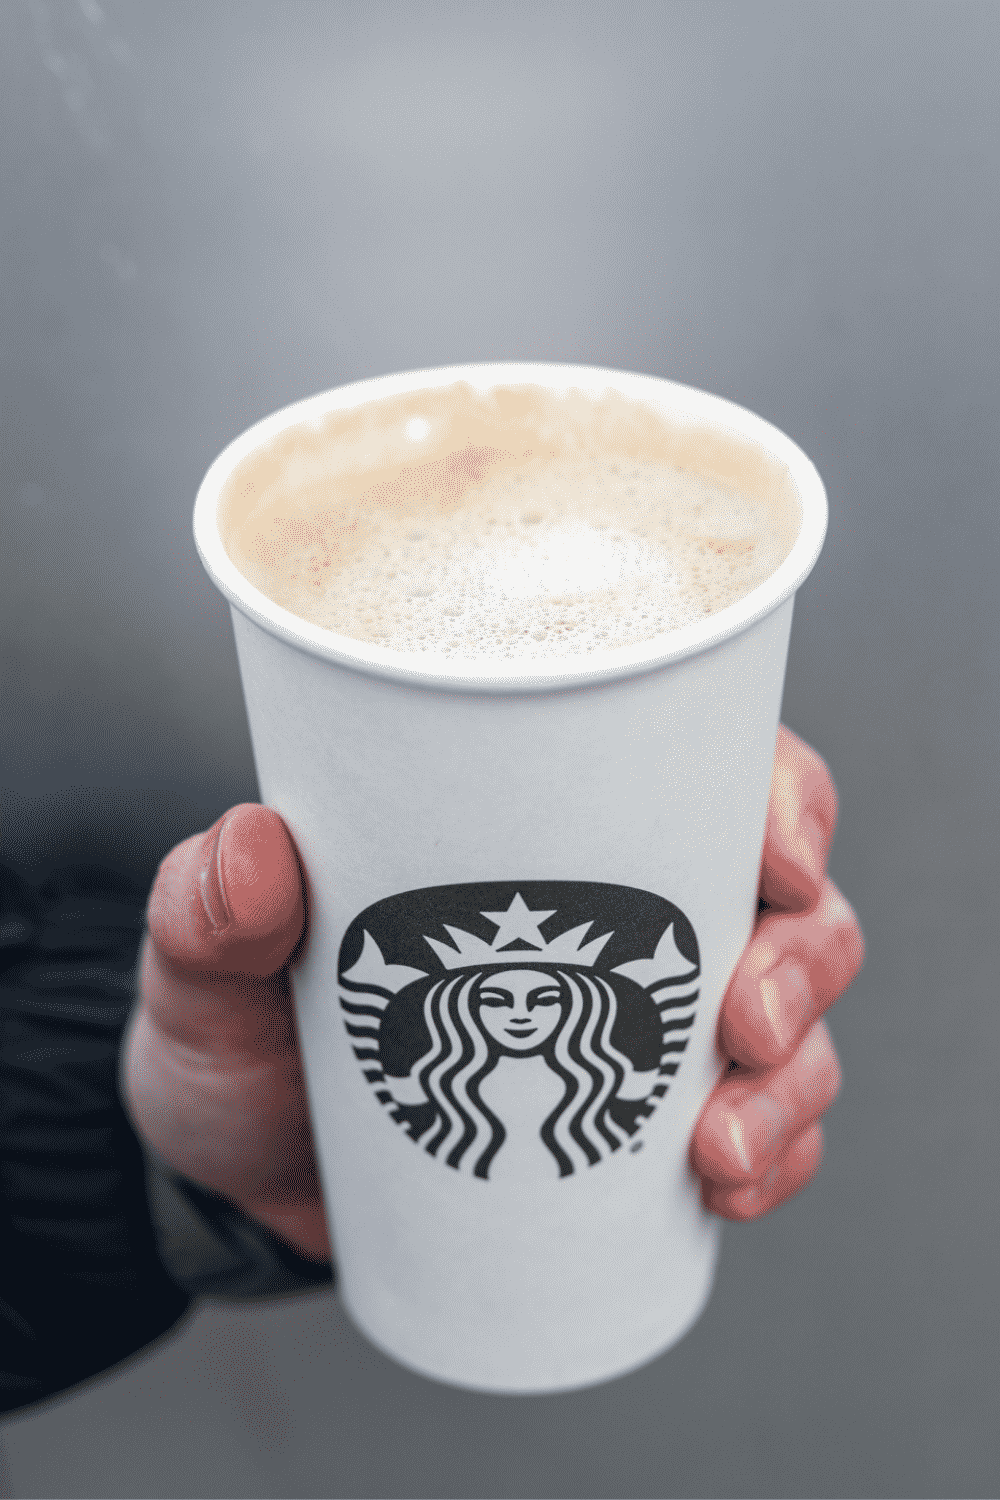 A hand holding a cup of Starbucks blonde vanilla latte.